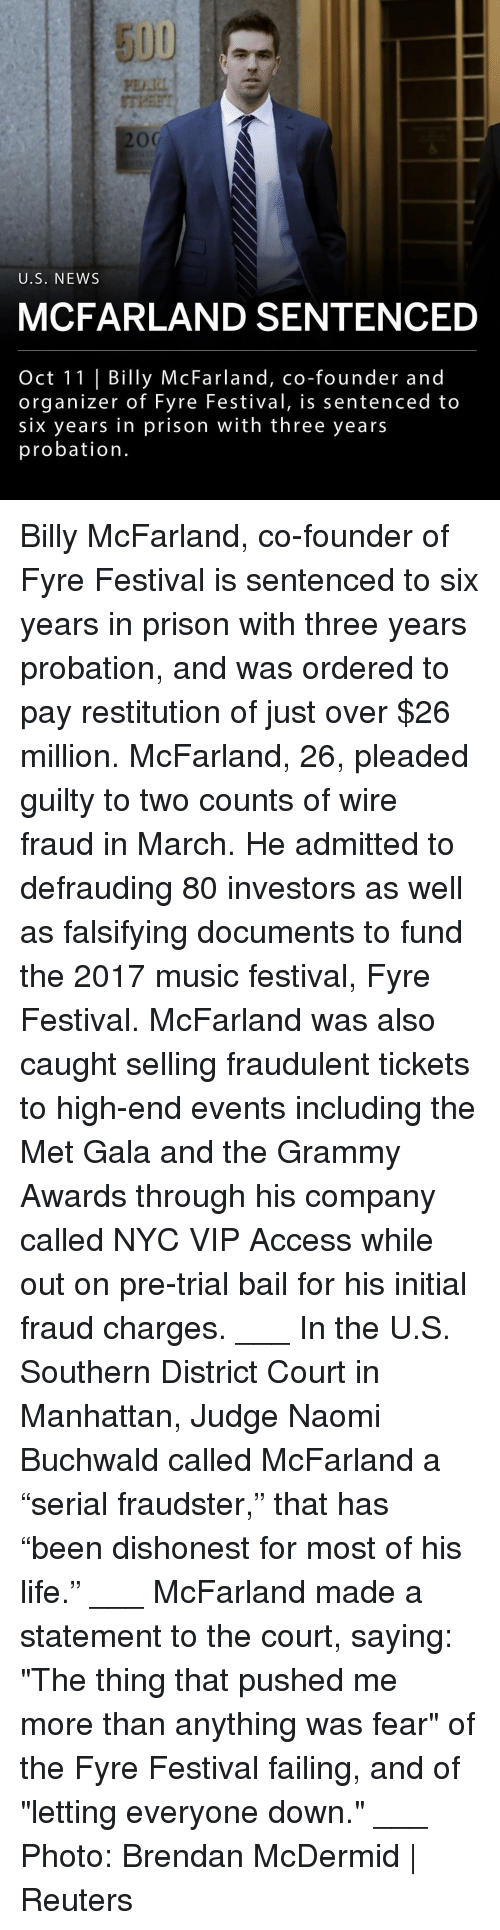 "Grammy Awards, Life, and Memes: 5UU  PDI  U.S. NEWs  MCFARLAND SENTENCED  Oct 11 | Billy McFarland, co-founder and  organizer of Fyre Festival, is sentenced to  six years in prison with three years  probation. Billy McFarland, co-founder of Fyre Festival is sentenced to six years in prison with three years probation, and was ordered to pay restitution of just over $26 million. McFarland, 26, pleaded guilty to two counts of wire fraud in March. He admitted to defrauding 80 investors as well as falsifying documents to fund the 2017 music festival, Fyre Festival. McFarland was also caught selling fraudulent tickets to high-end events including the Met Gala and the Grammy Awards through his company called NYC VIP Access while out on pre-trial bail for his initial fraud charges. ___ In the U.S. Southern District Court in Manhattan, Judge Naomi Buchwald called McFarland a ""serial fraudster,"" that has ""been dishonest for most of his life."" ___ McFarland made a statement to the court, saying: ""The thing that pushed me more than anything was fear"" of the Fyre Festival failing, and of ""letting everyone down."" ___ Photo: Brendan McDermid 